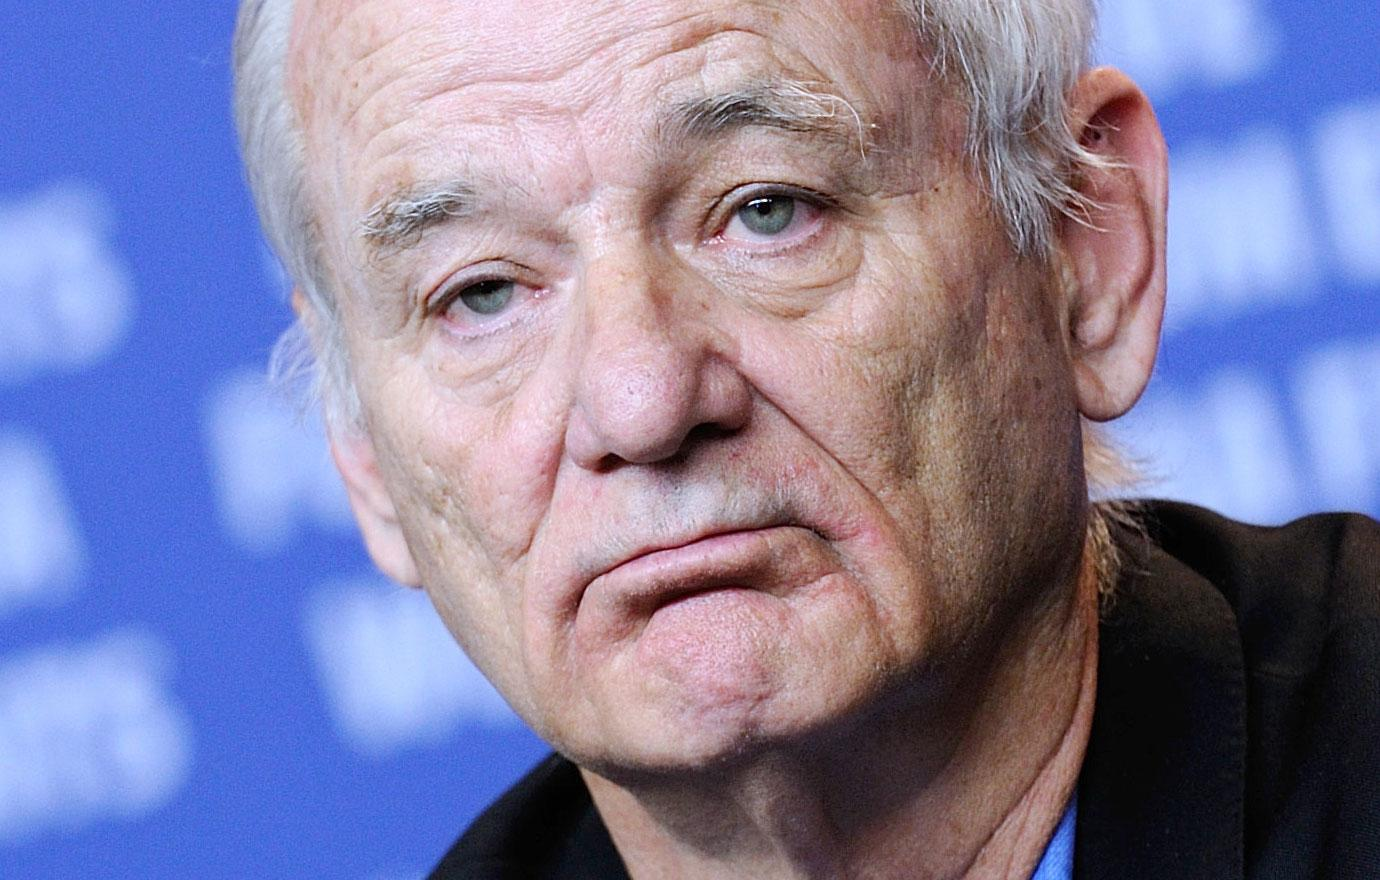 Photographer Claims Bill Murray Accosted Him